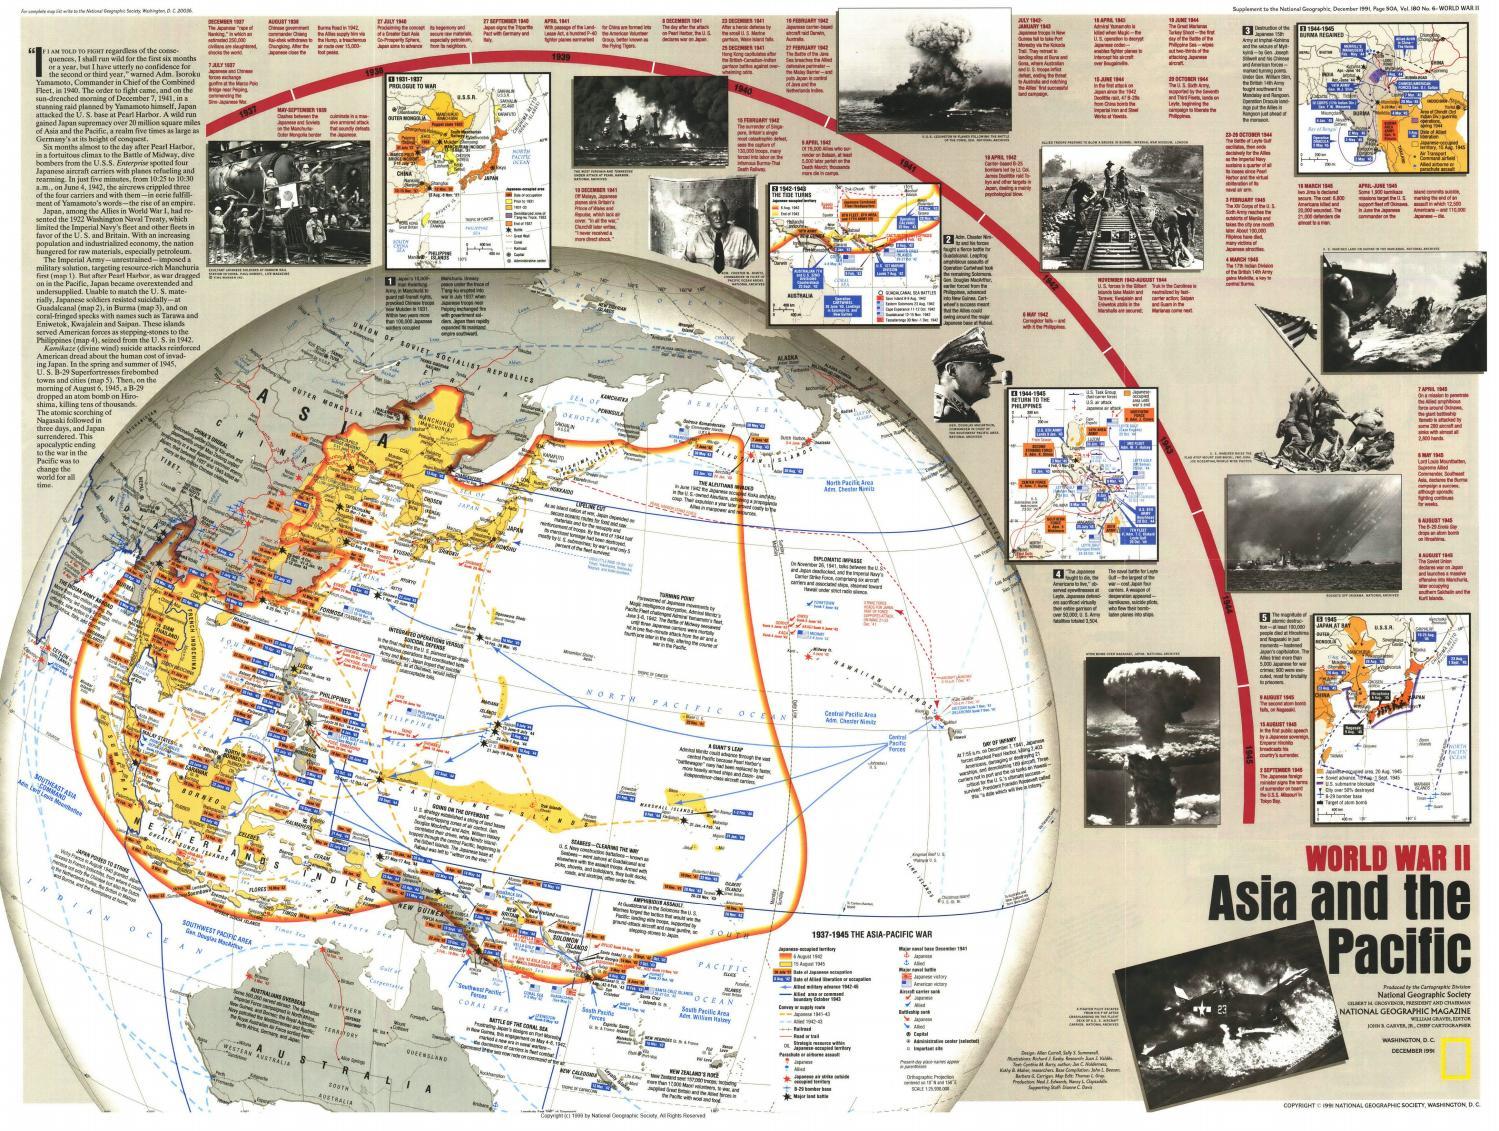 NG: World War iI: Asia and The Pacific (1991) by